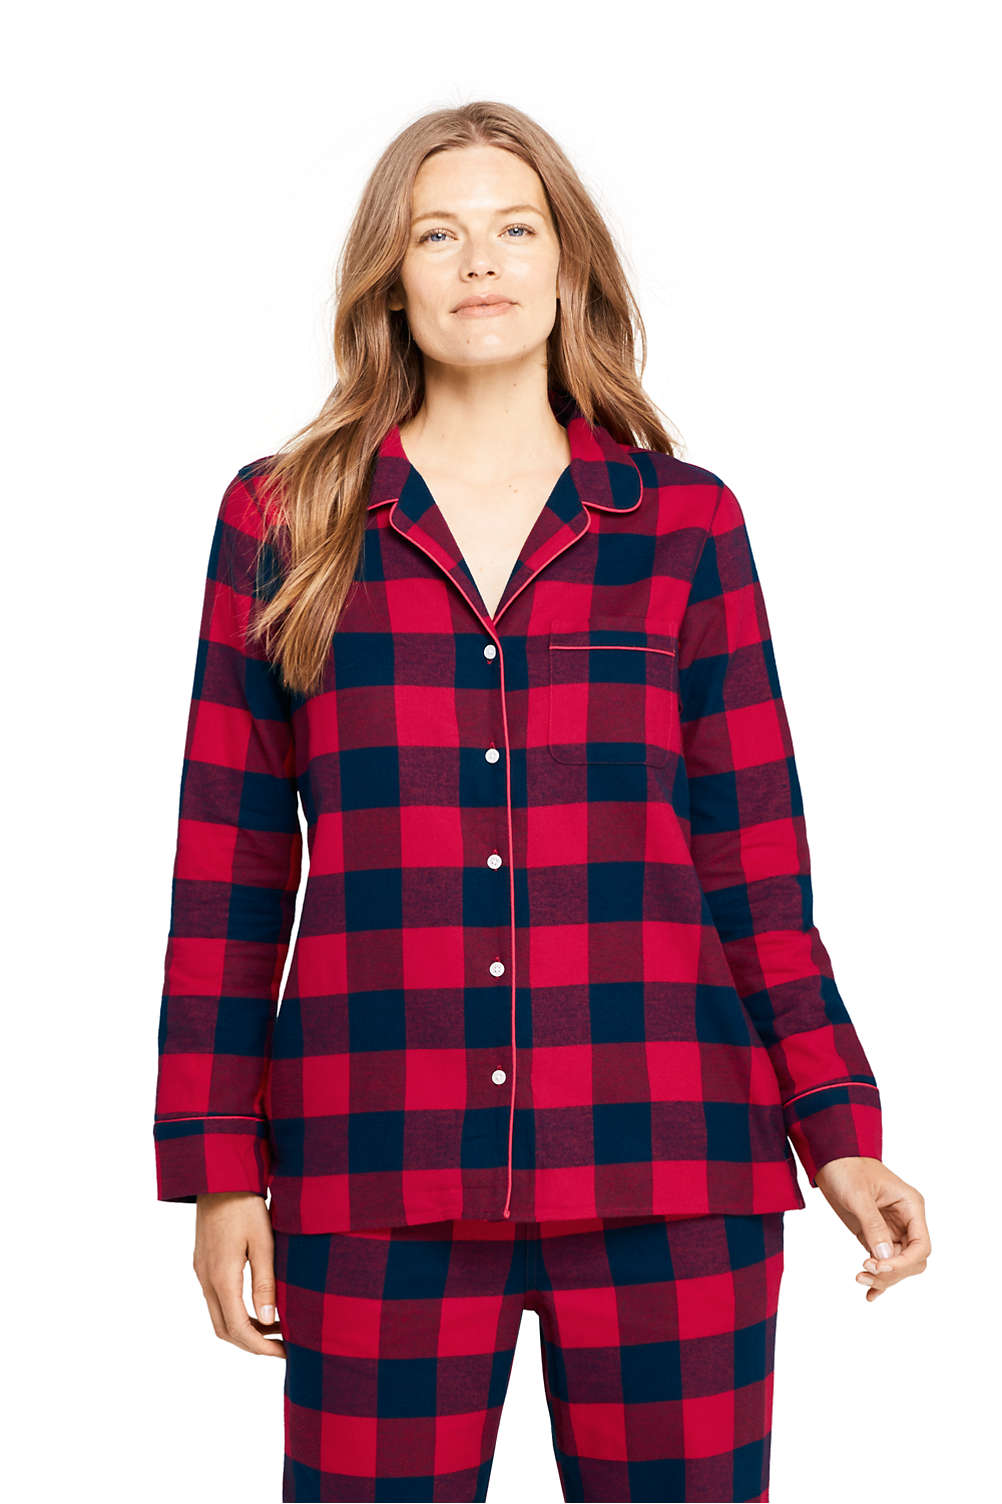 7aafcea7a7f Women's Print Flannel Pajama Top from Lands' End